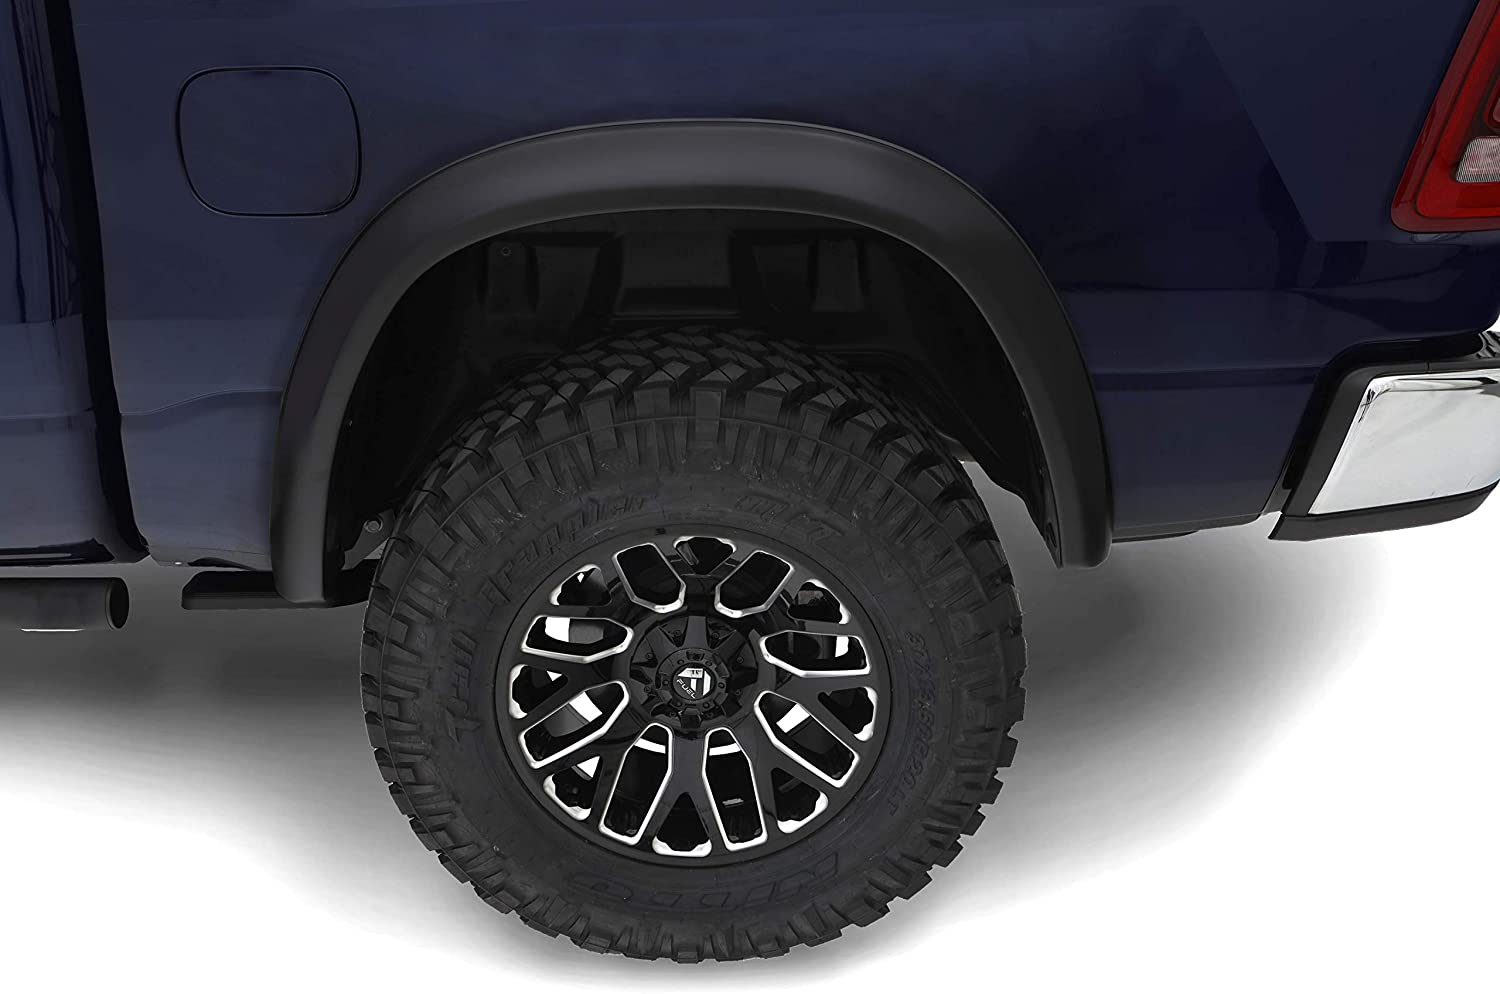 Excludes Rebel Bushwacker 50928-02 Black OE-Style Smooth Finish 4-Piece Fender Flare Set for 2019 Ram 1500